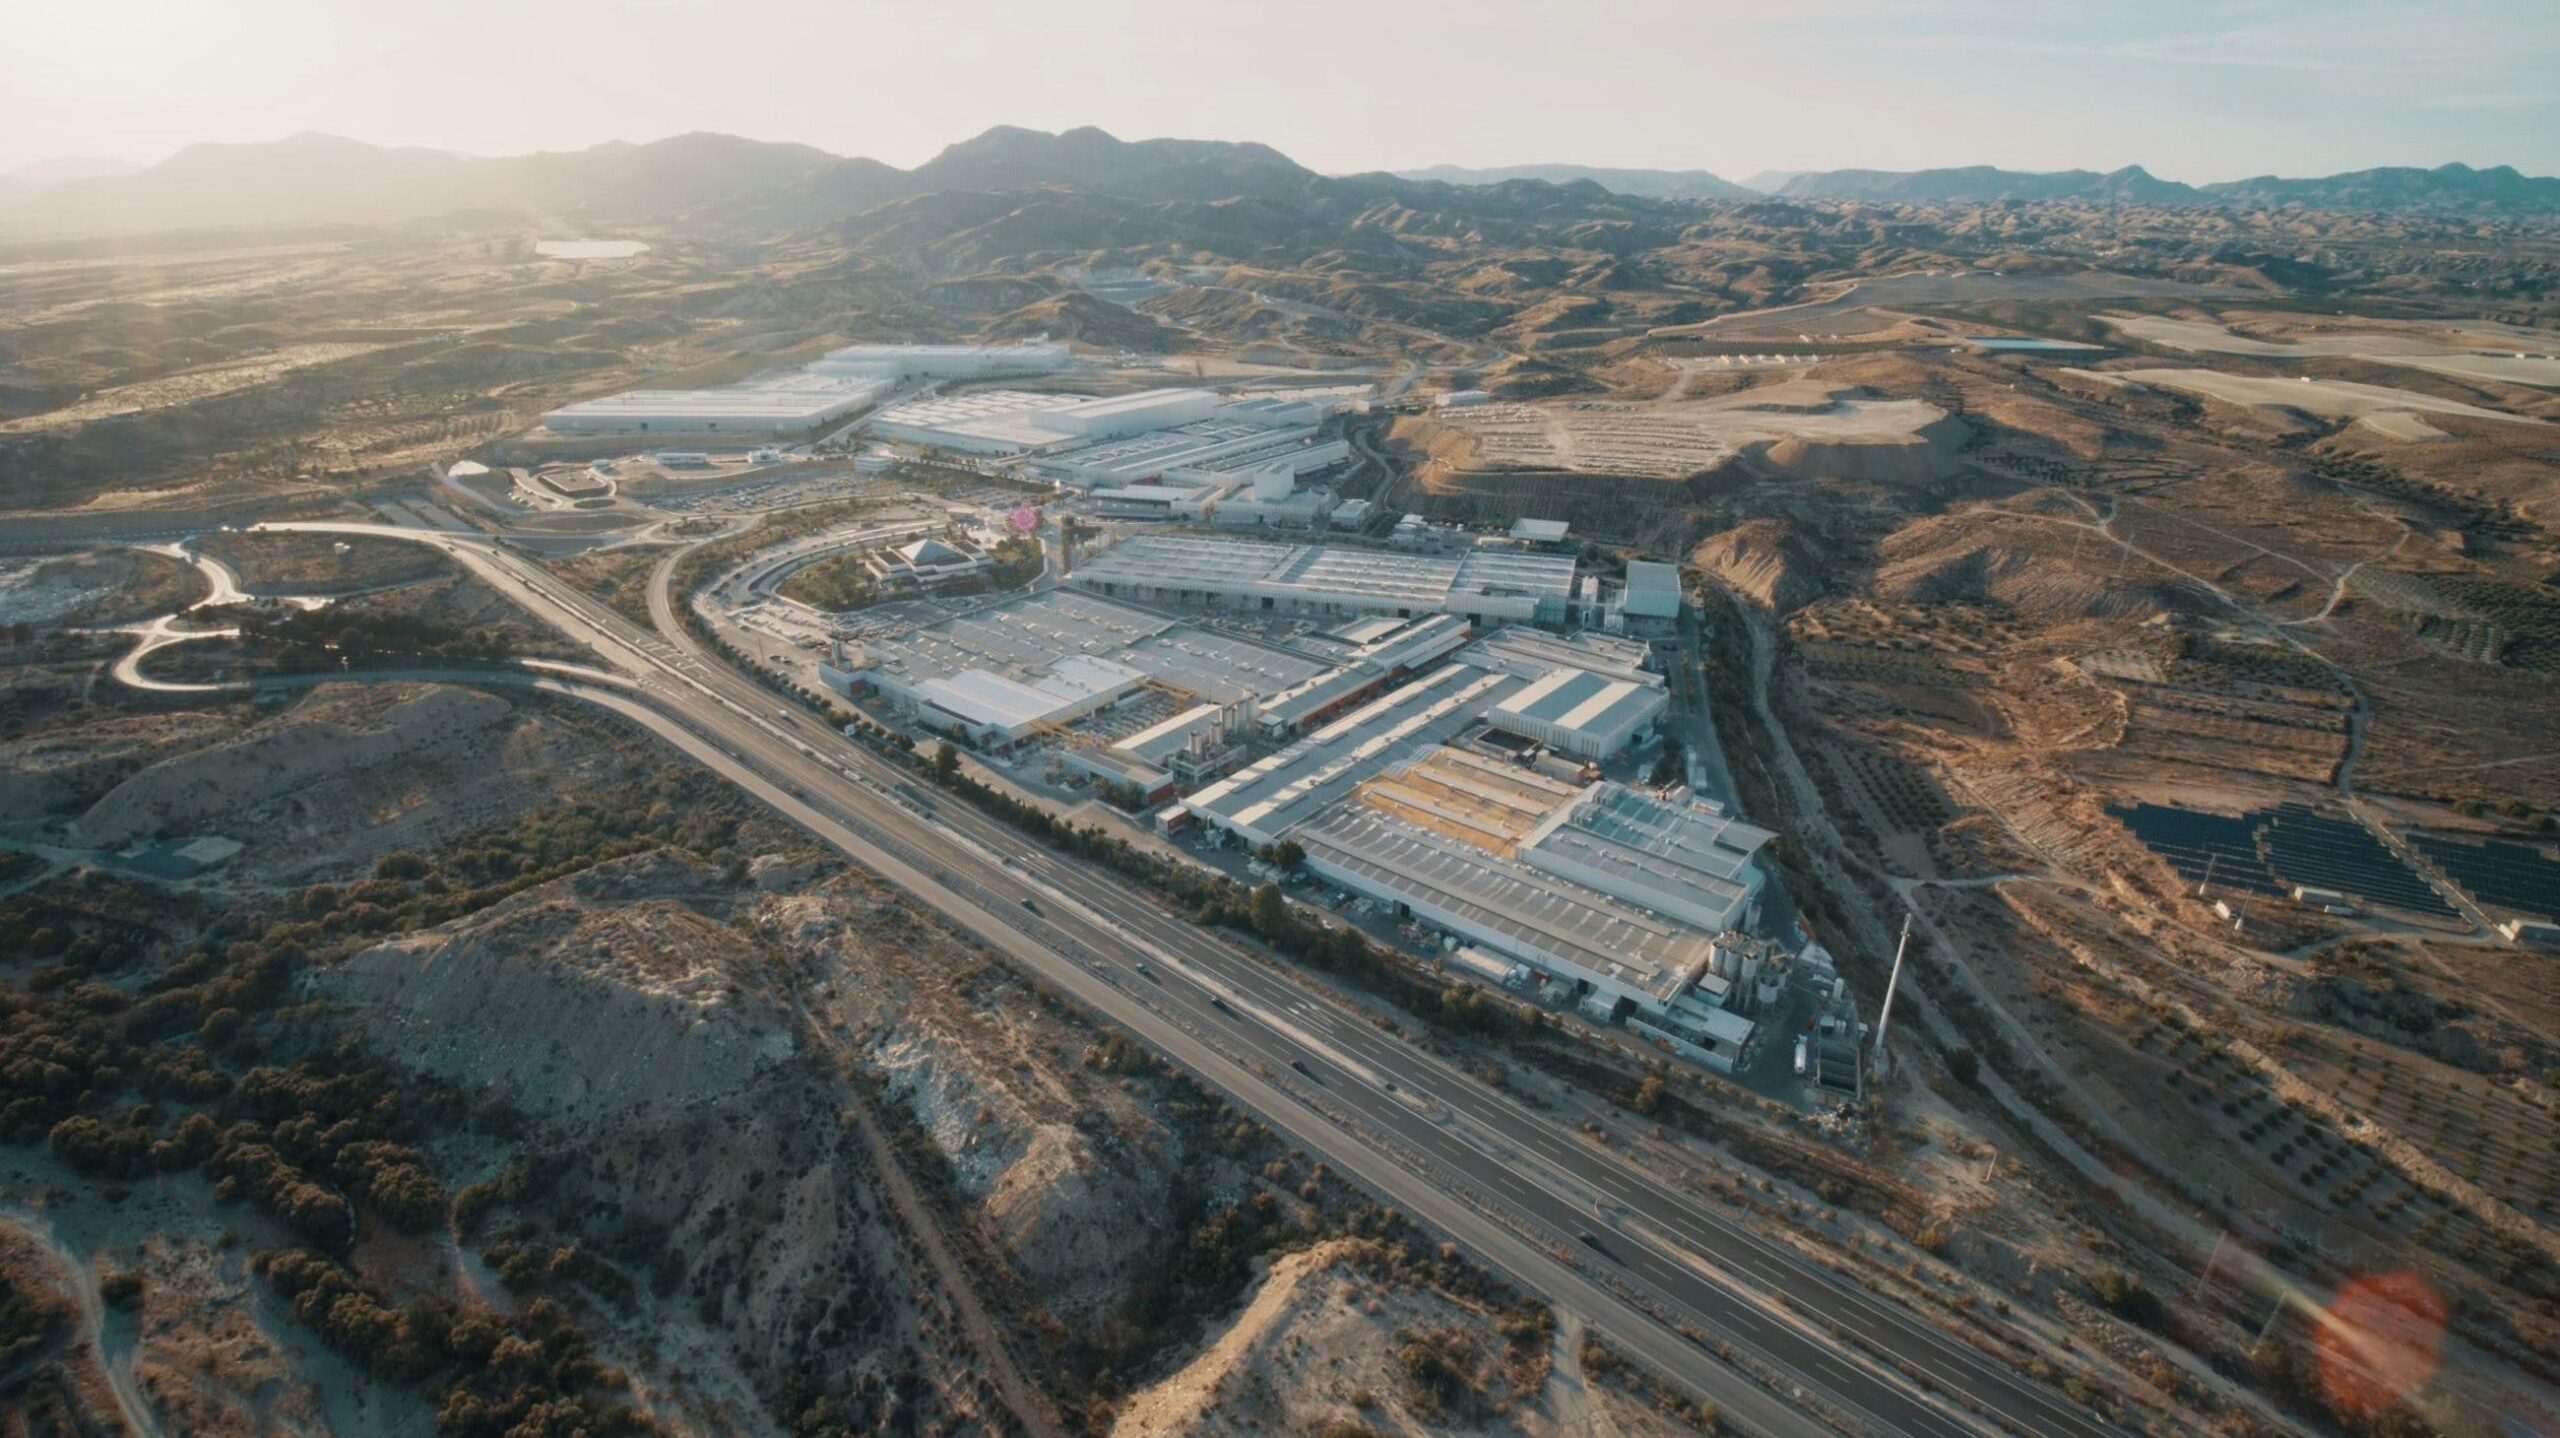 Image of Parque Industrial Cosentino Cantoria 1 3 scaled in Cosentino, receives Environment Award from Andalusia Regional Government - Cosentino